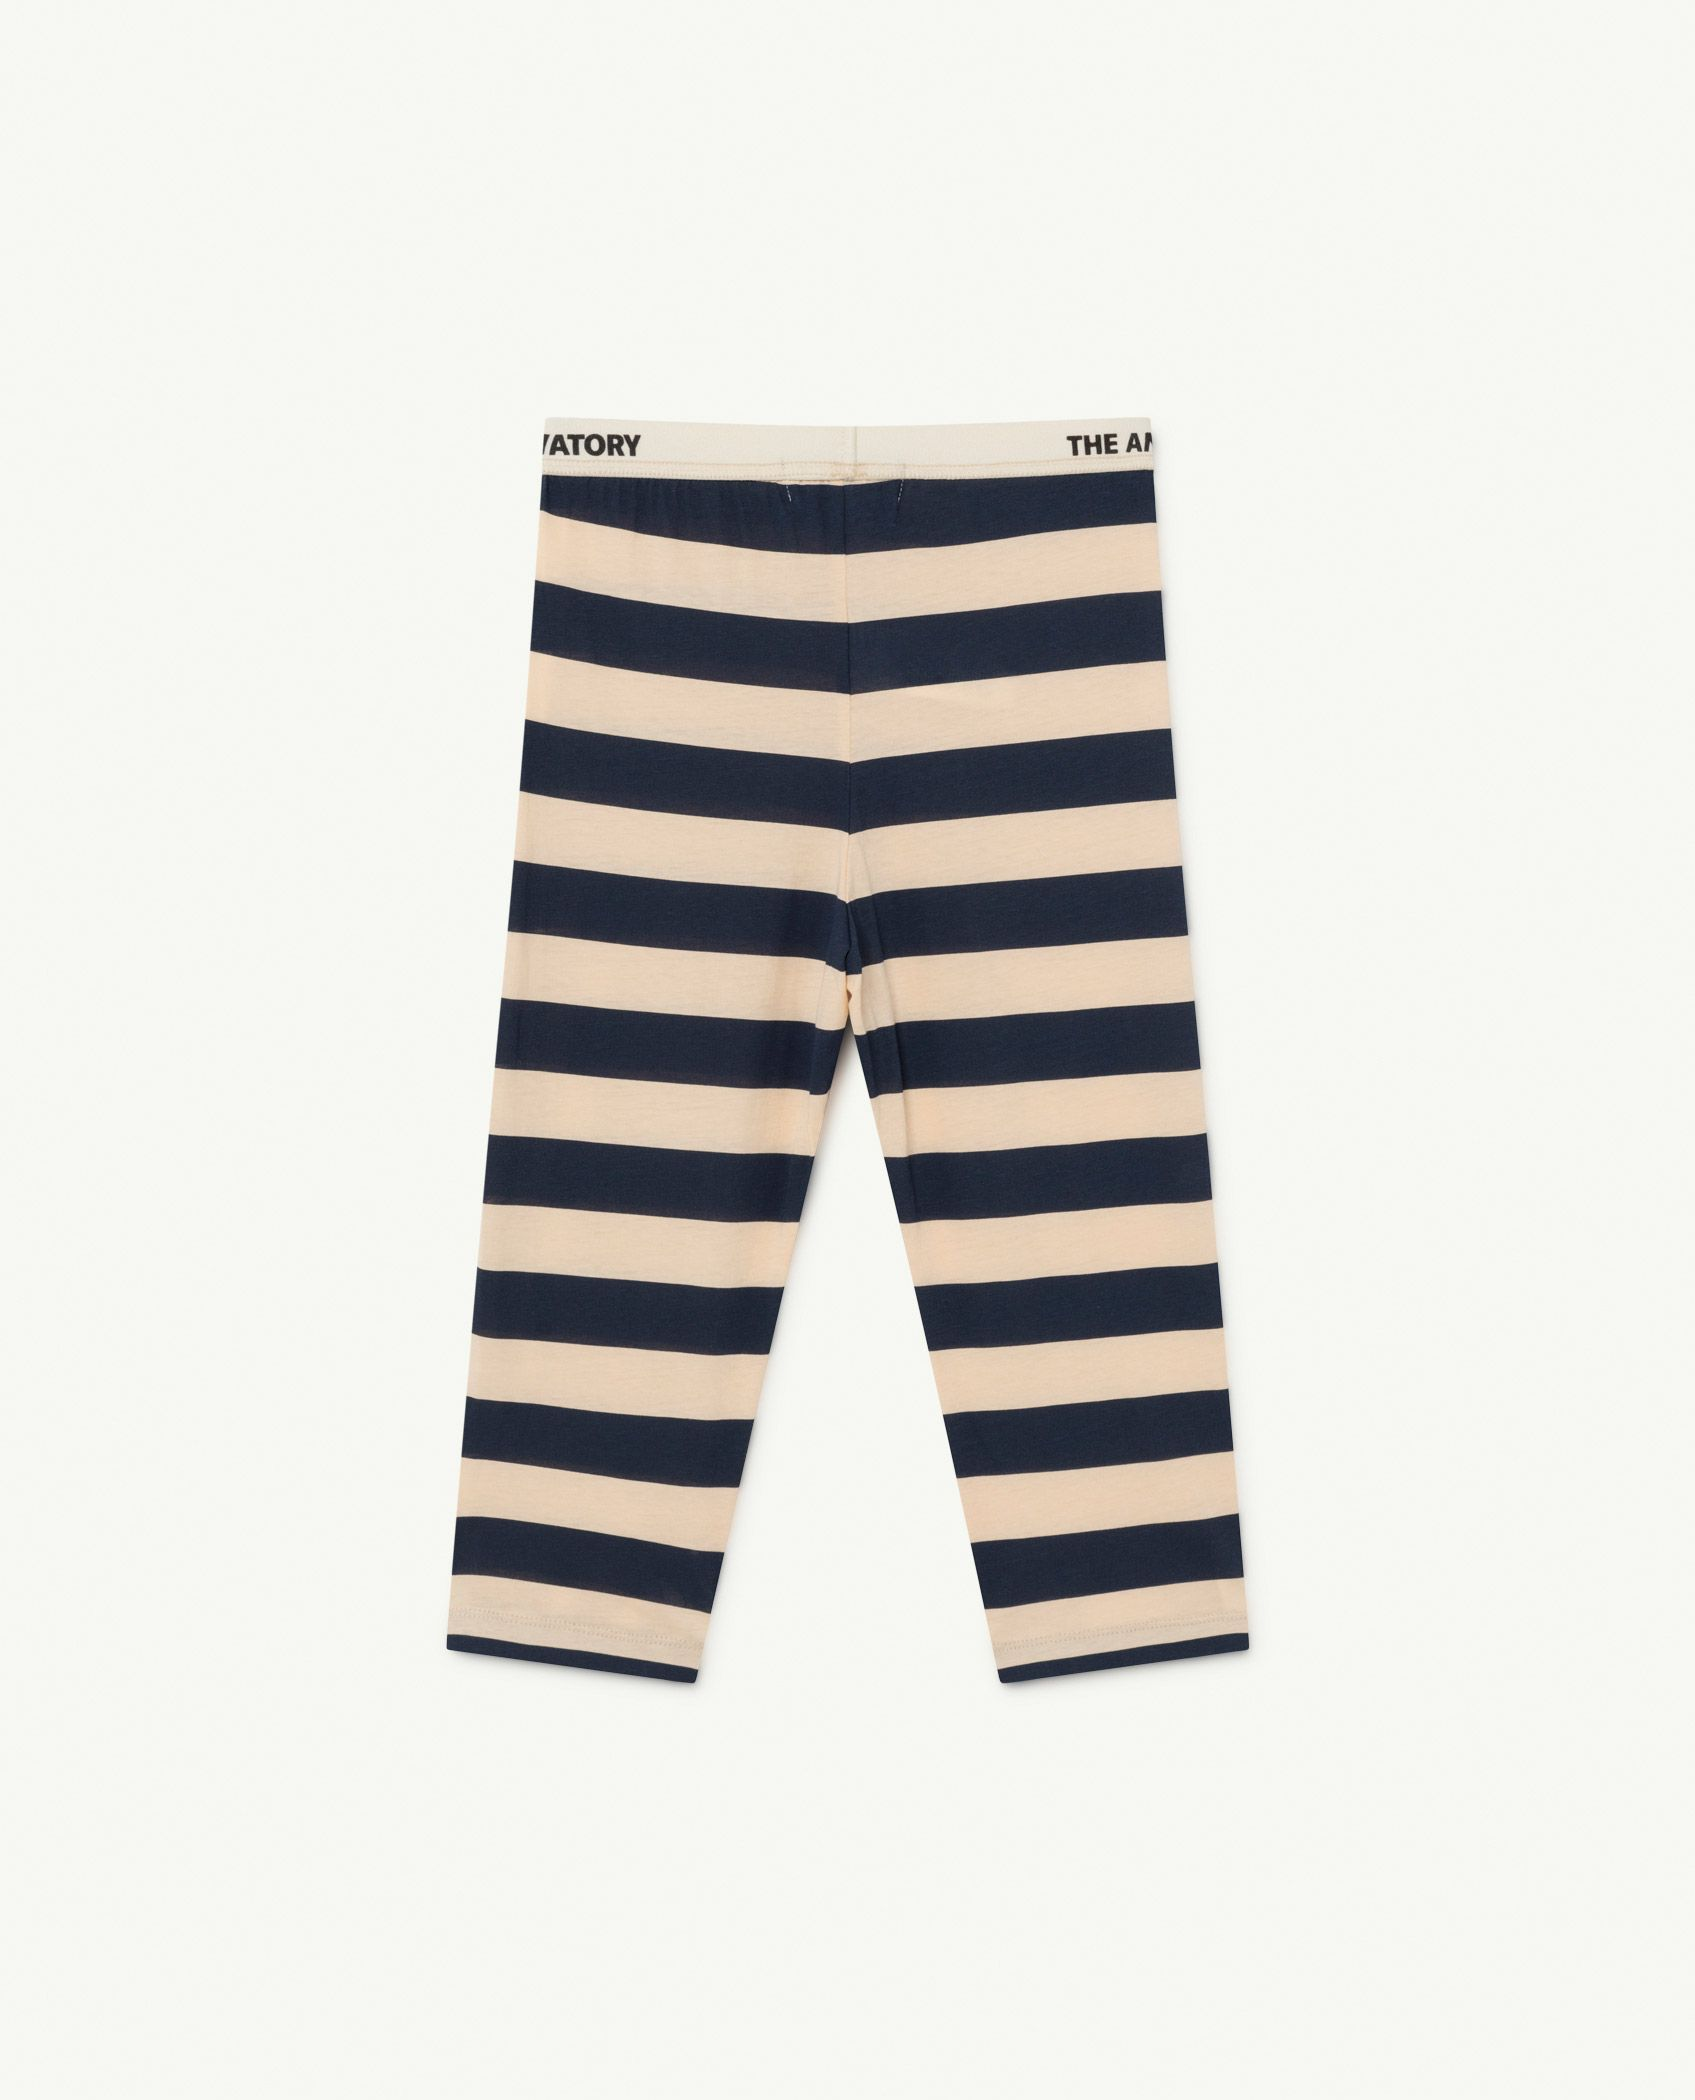 Peachy Stripes Eagle Leggings img-2